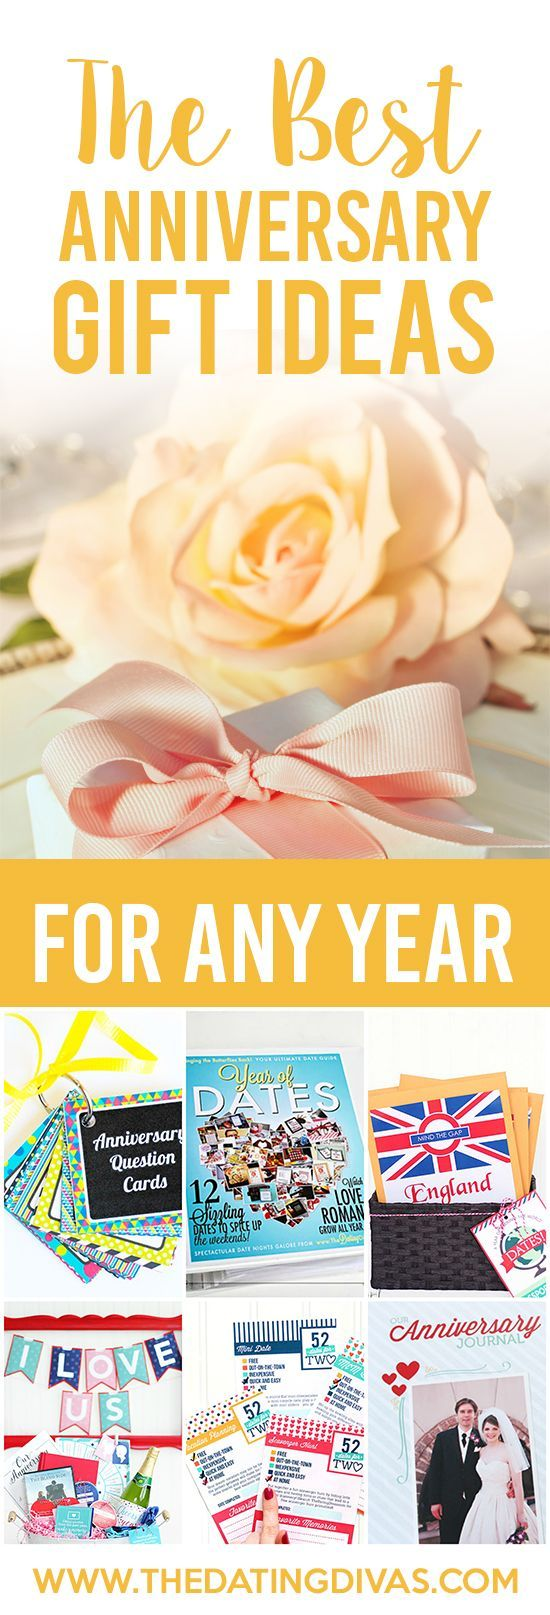 The best images about anniversary ideas on pinterest